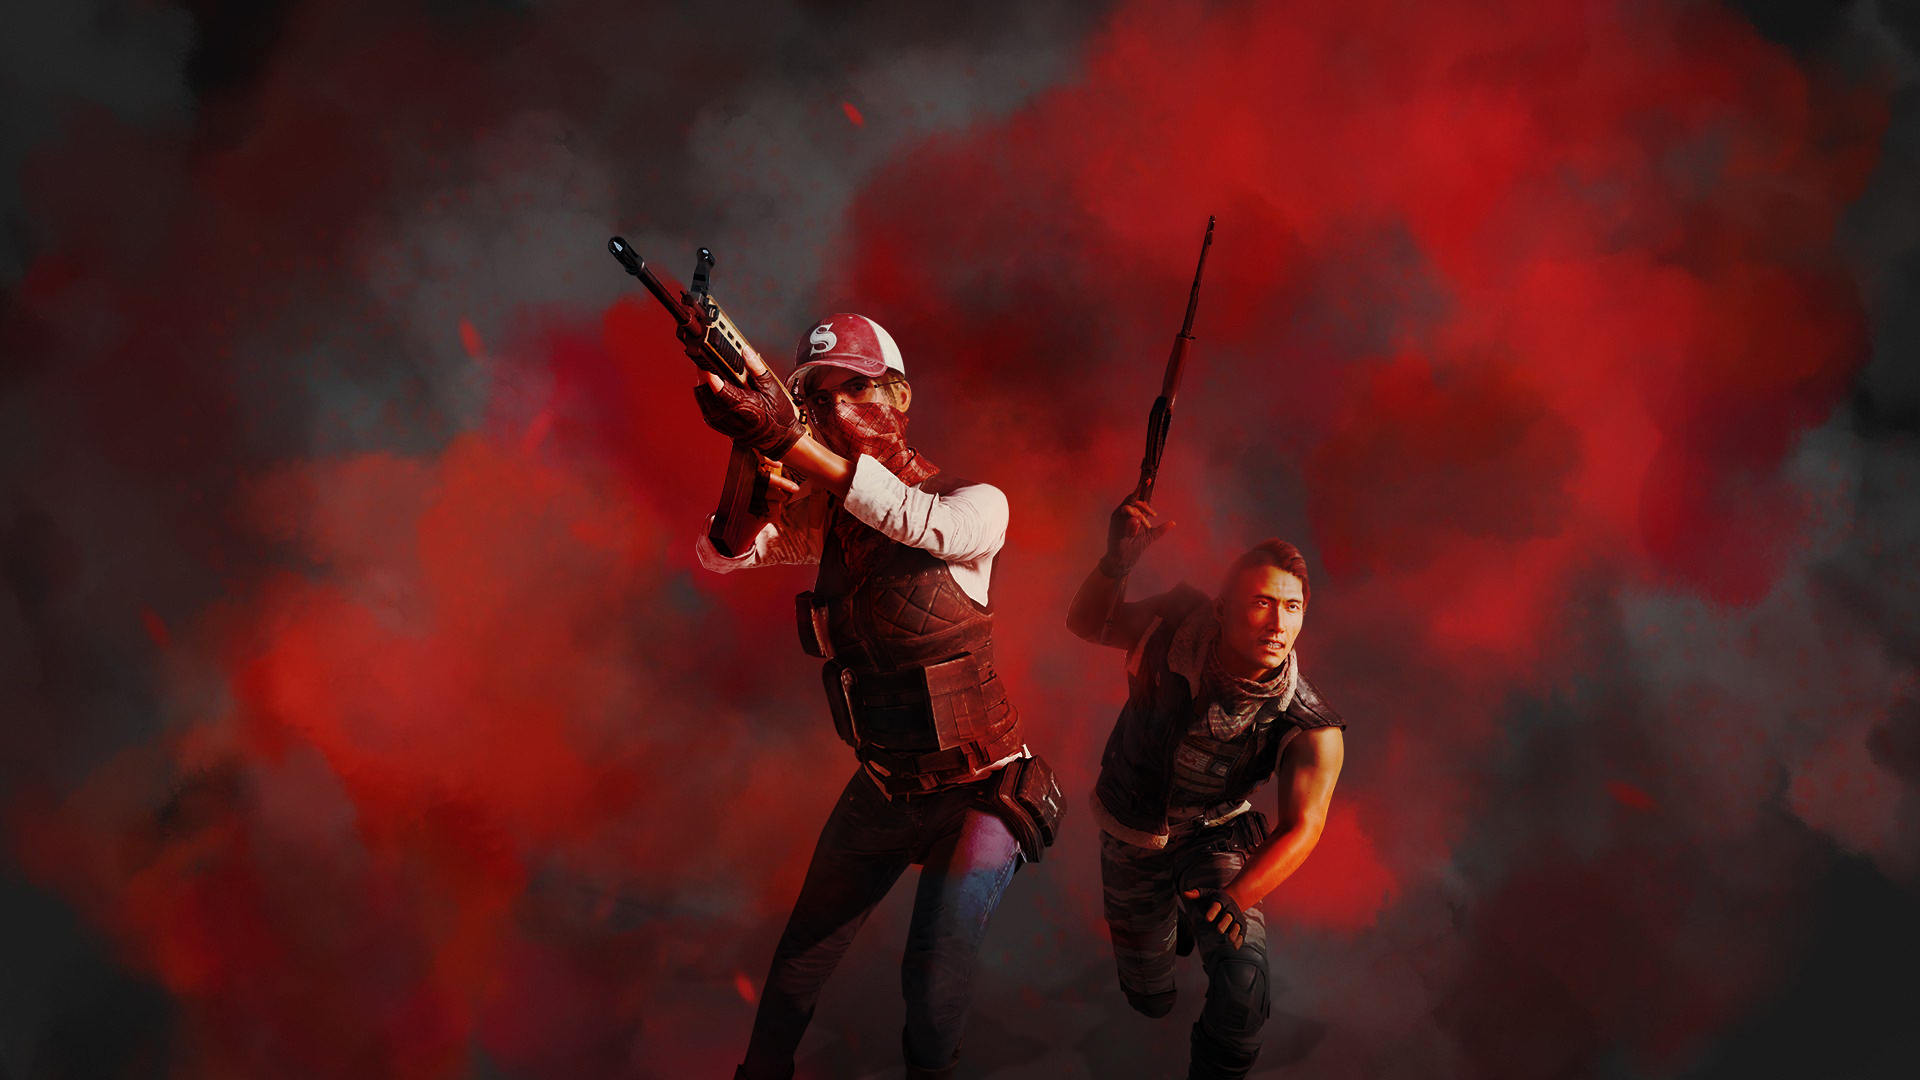 Pubg Black Wallpapers: PlayerUnknown's Battlegrounds Wallpapers, Pictures, Images